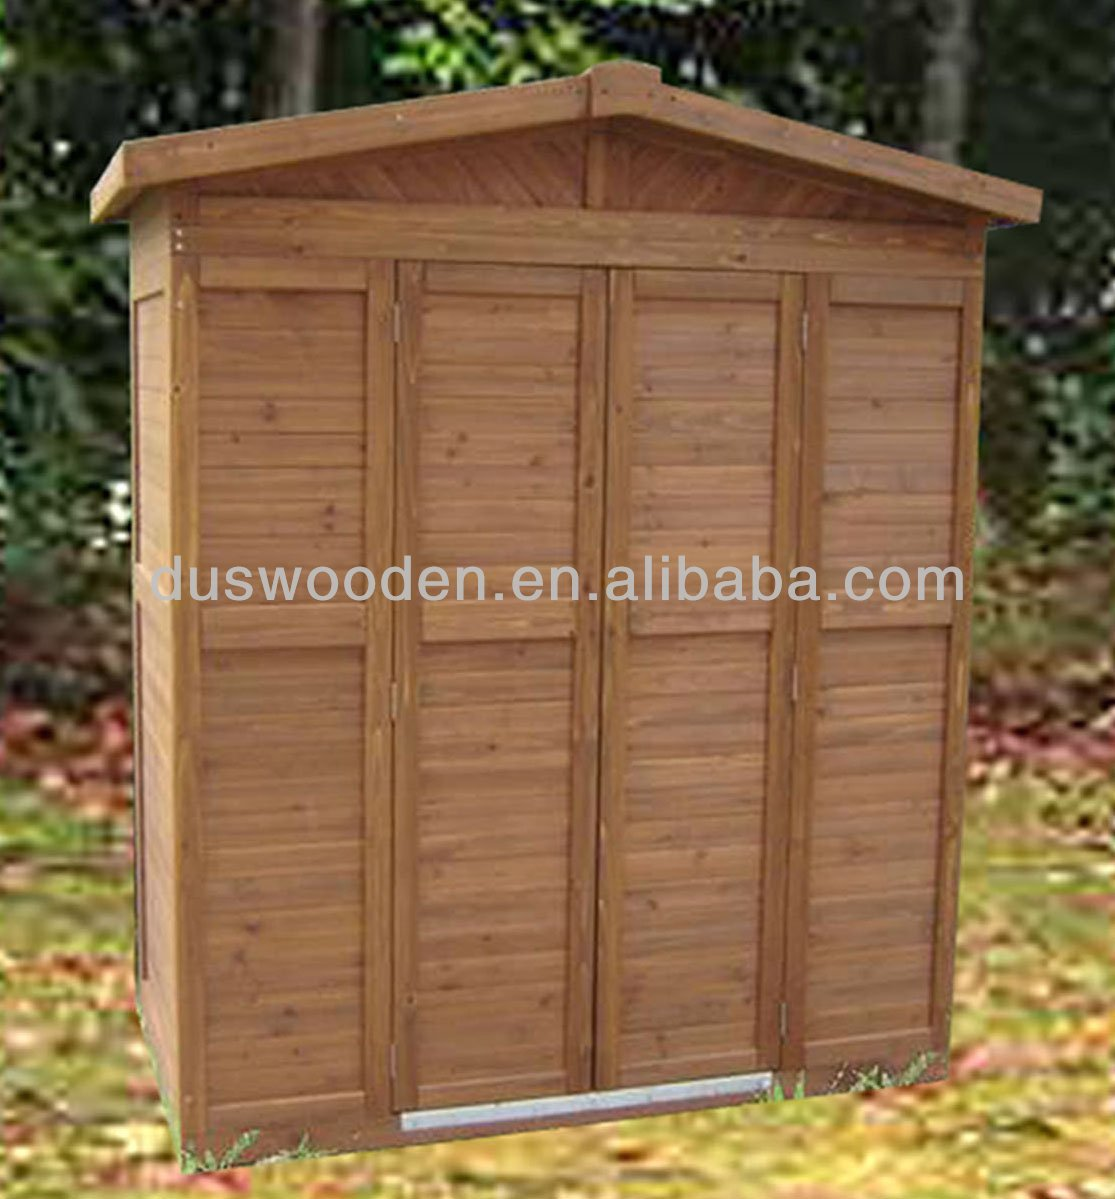 Wooden Shed And Garden Storage Cabinet